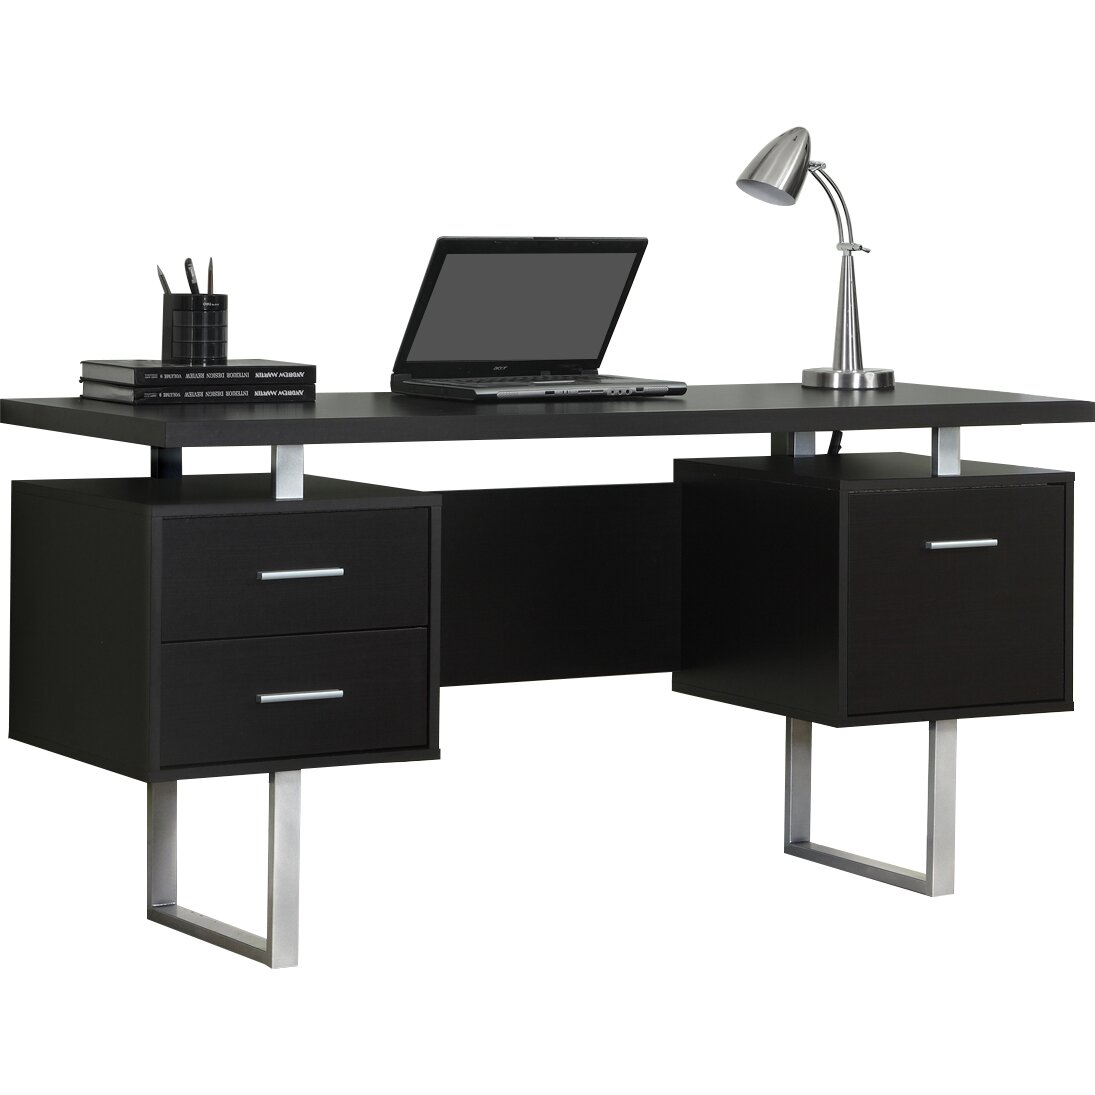 Furniture Office Computer Desks Monarch Specialties Inc